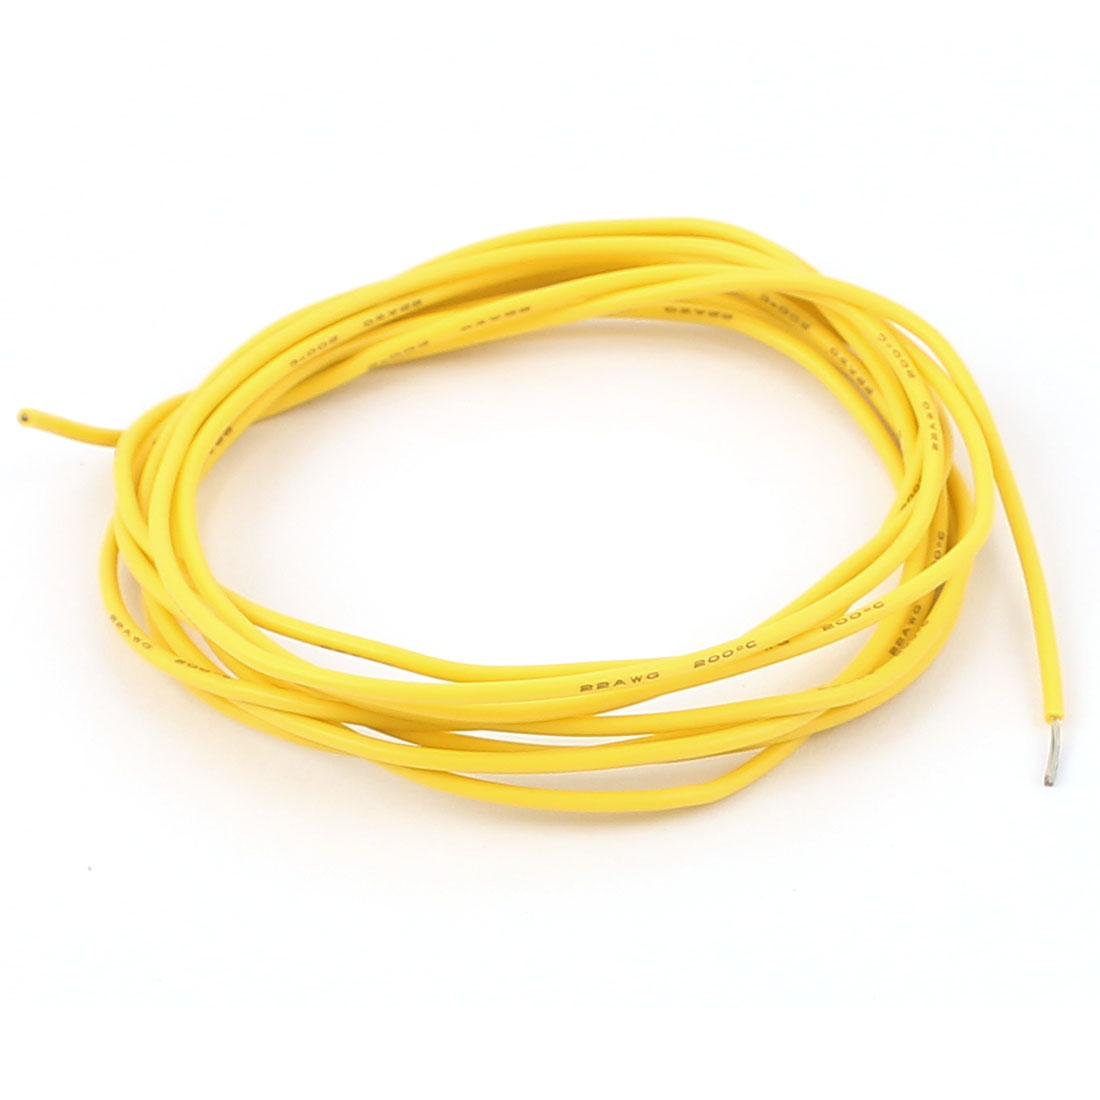 2M 22AWG Electric Copper Core Flexible Silicone Wire Cable Yellow